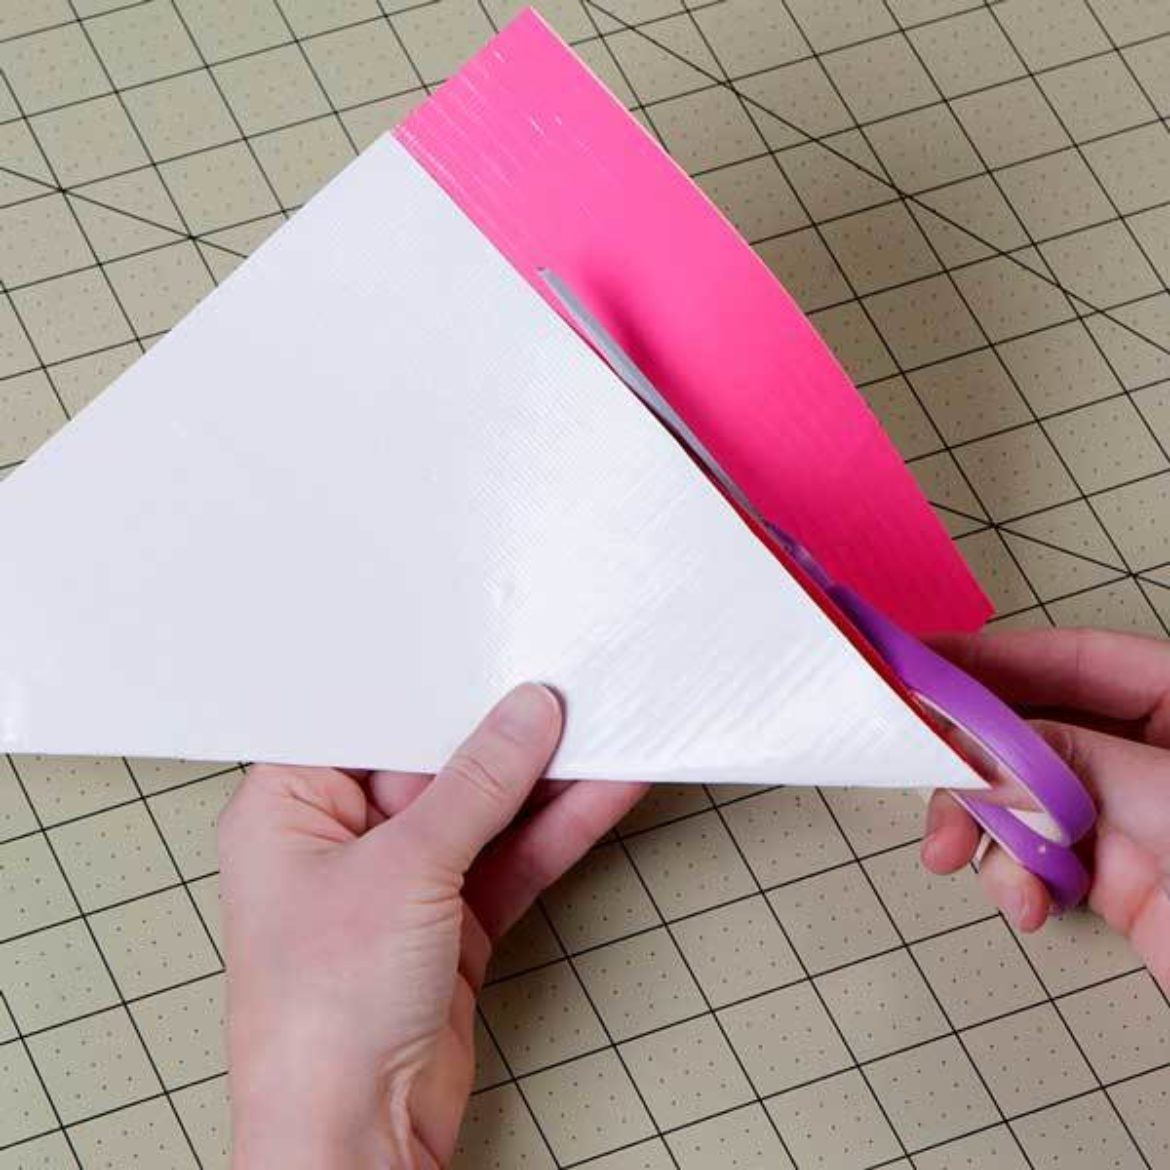 single layered rectangle from previous step cut off so that it forms a square sheet of fabric